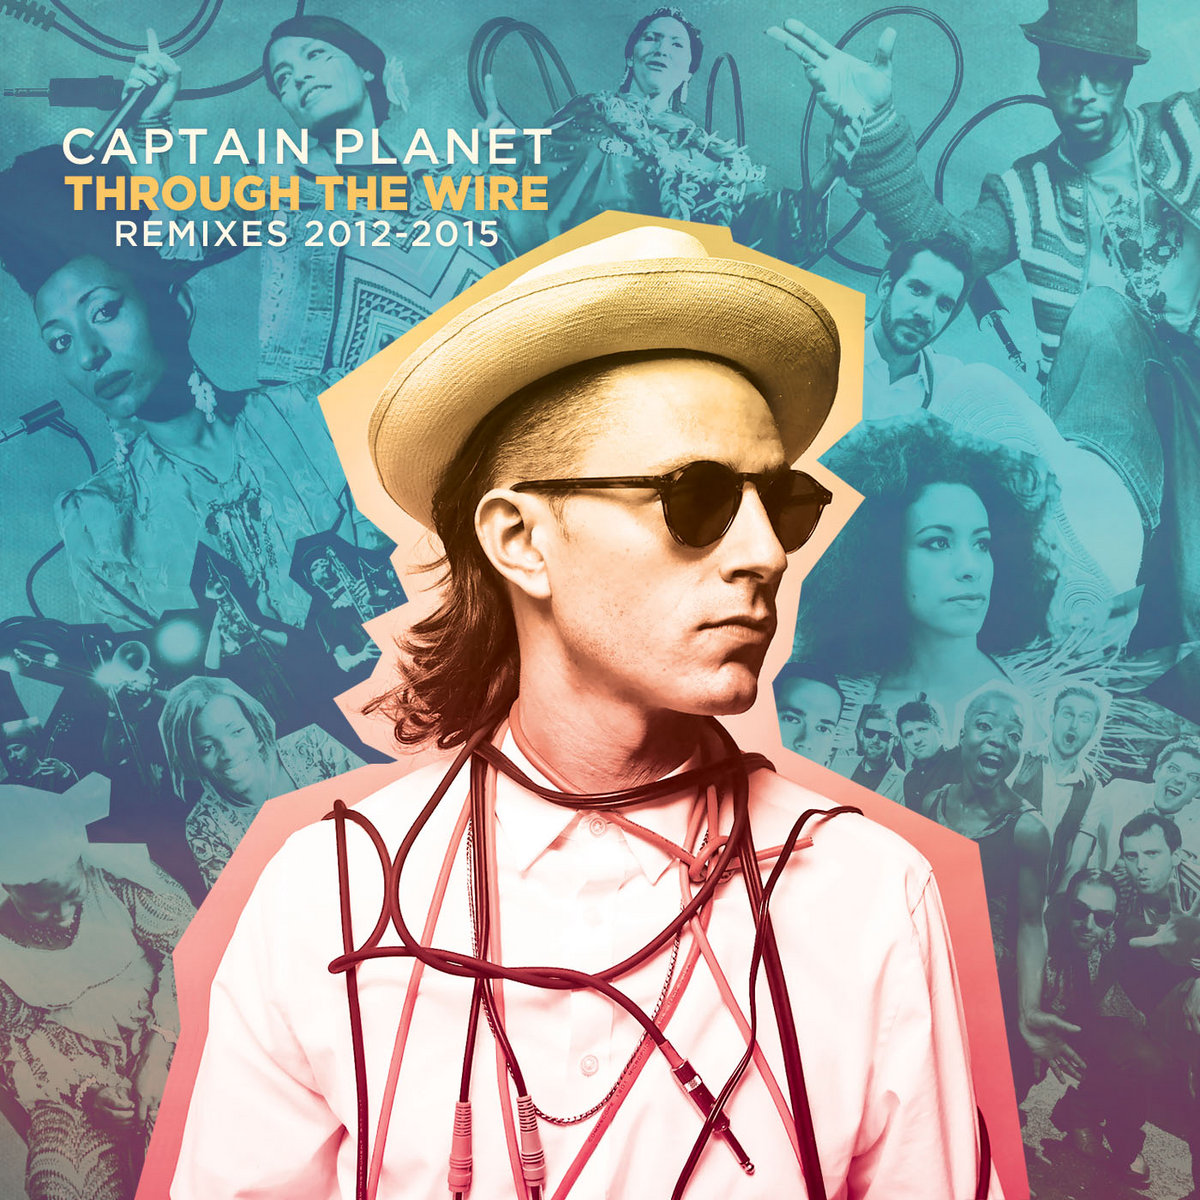 Through The Wire: Remixes 2012-2015 | Captain Planet